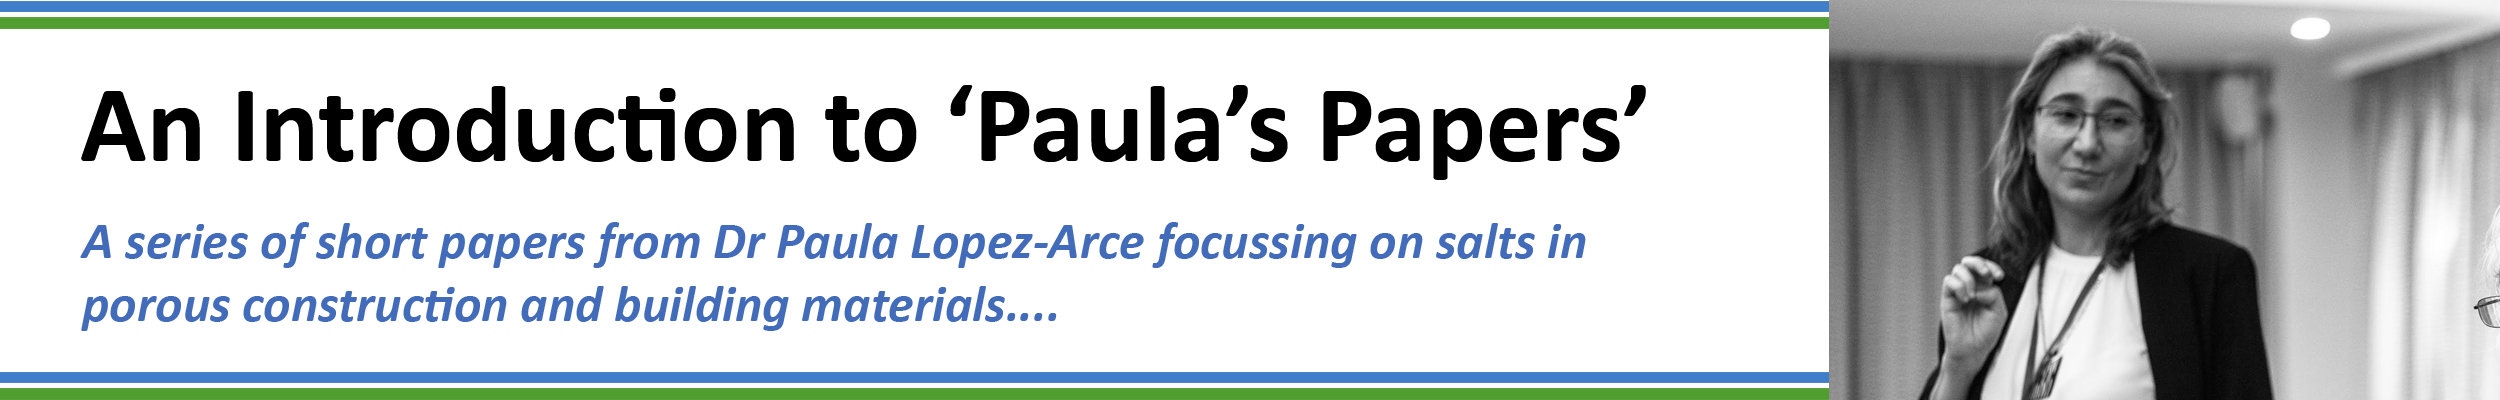 Paula's Papers - Introduction